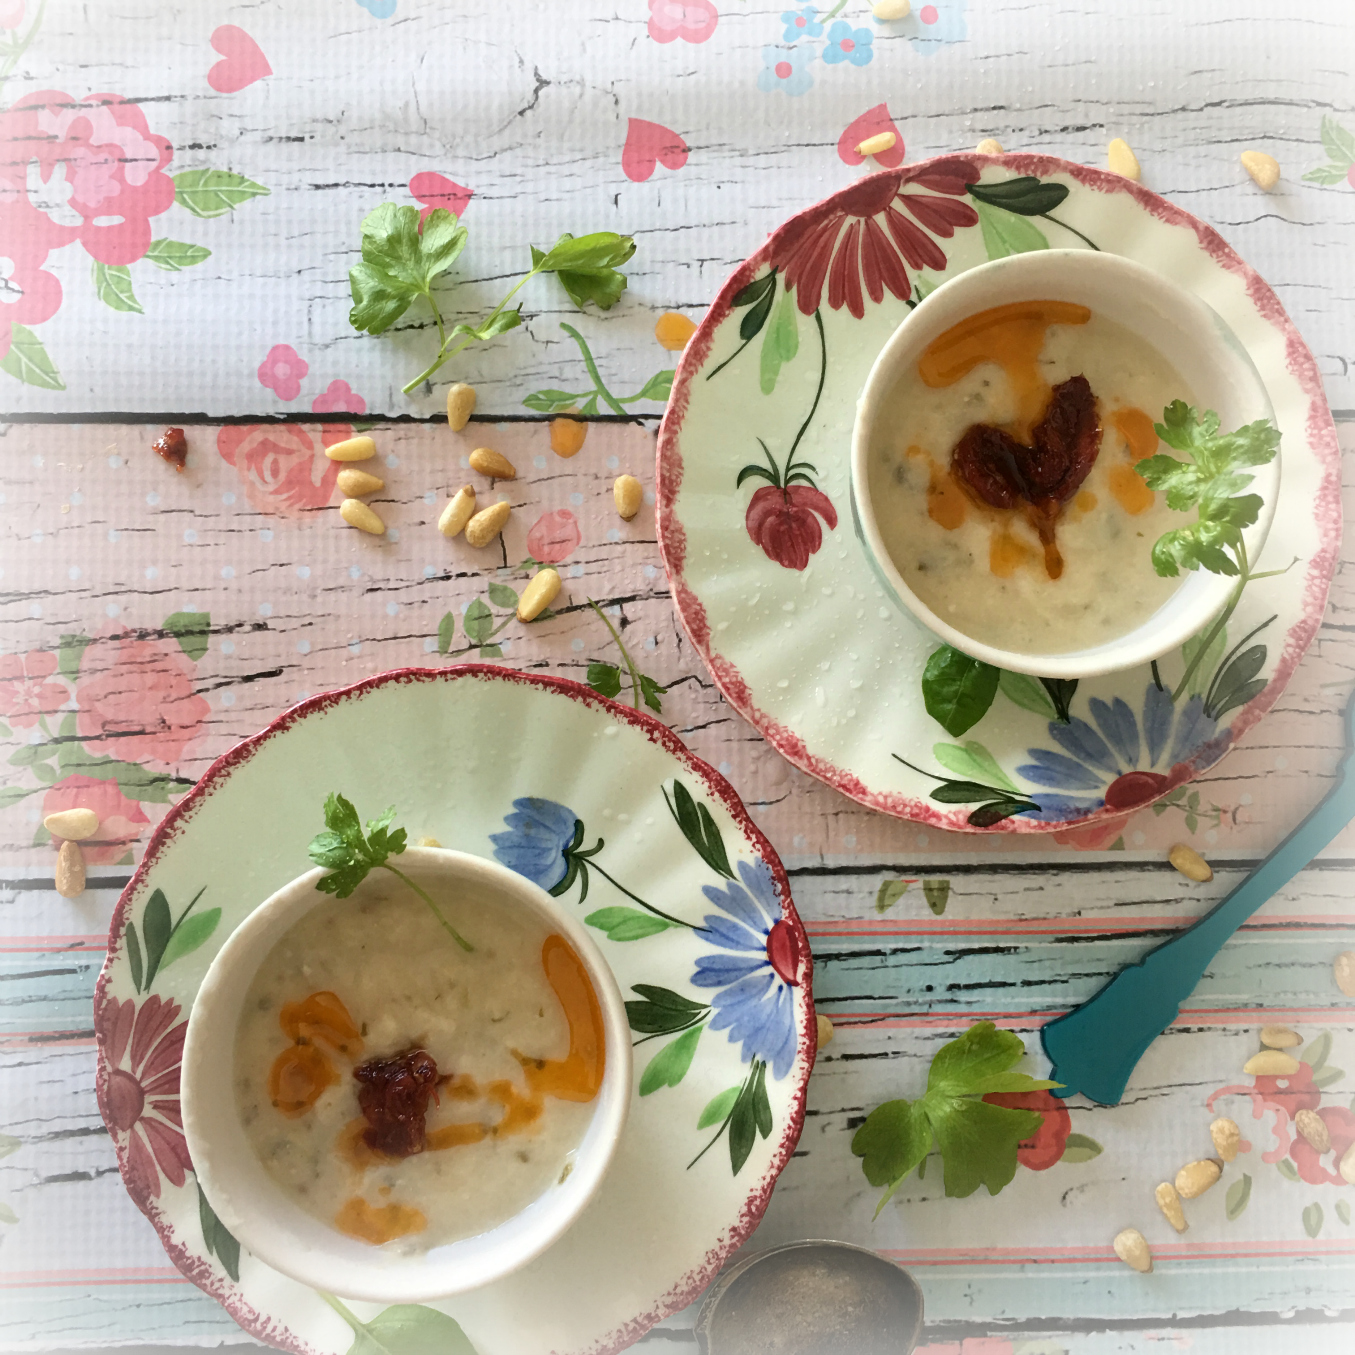 ©Cauliflower Soup with Herbs, Two Bowls, by Dena T Bray.jpg